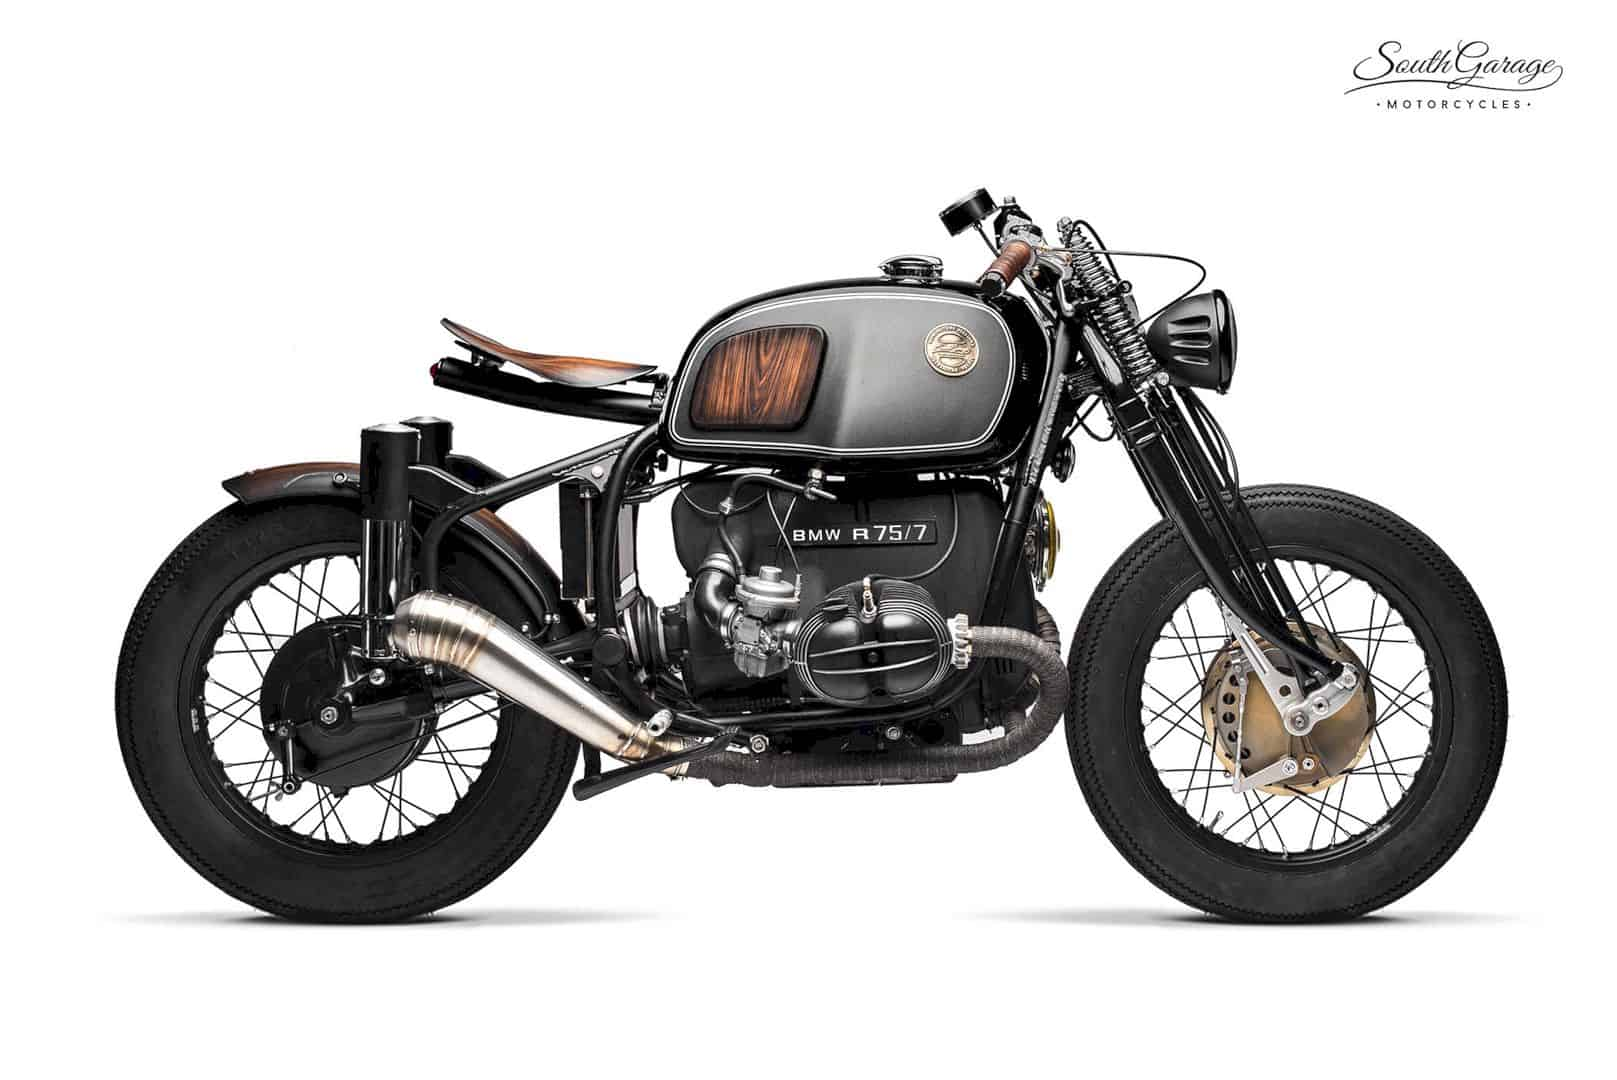 Bmw R75 5 Nerboruta By South Garage 7